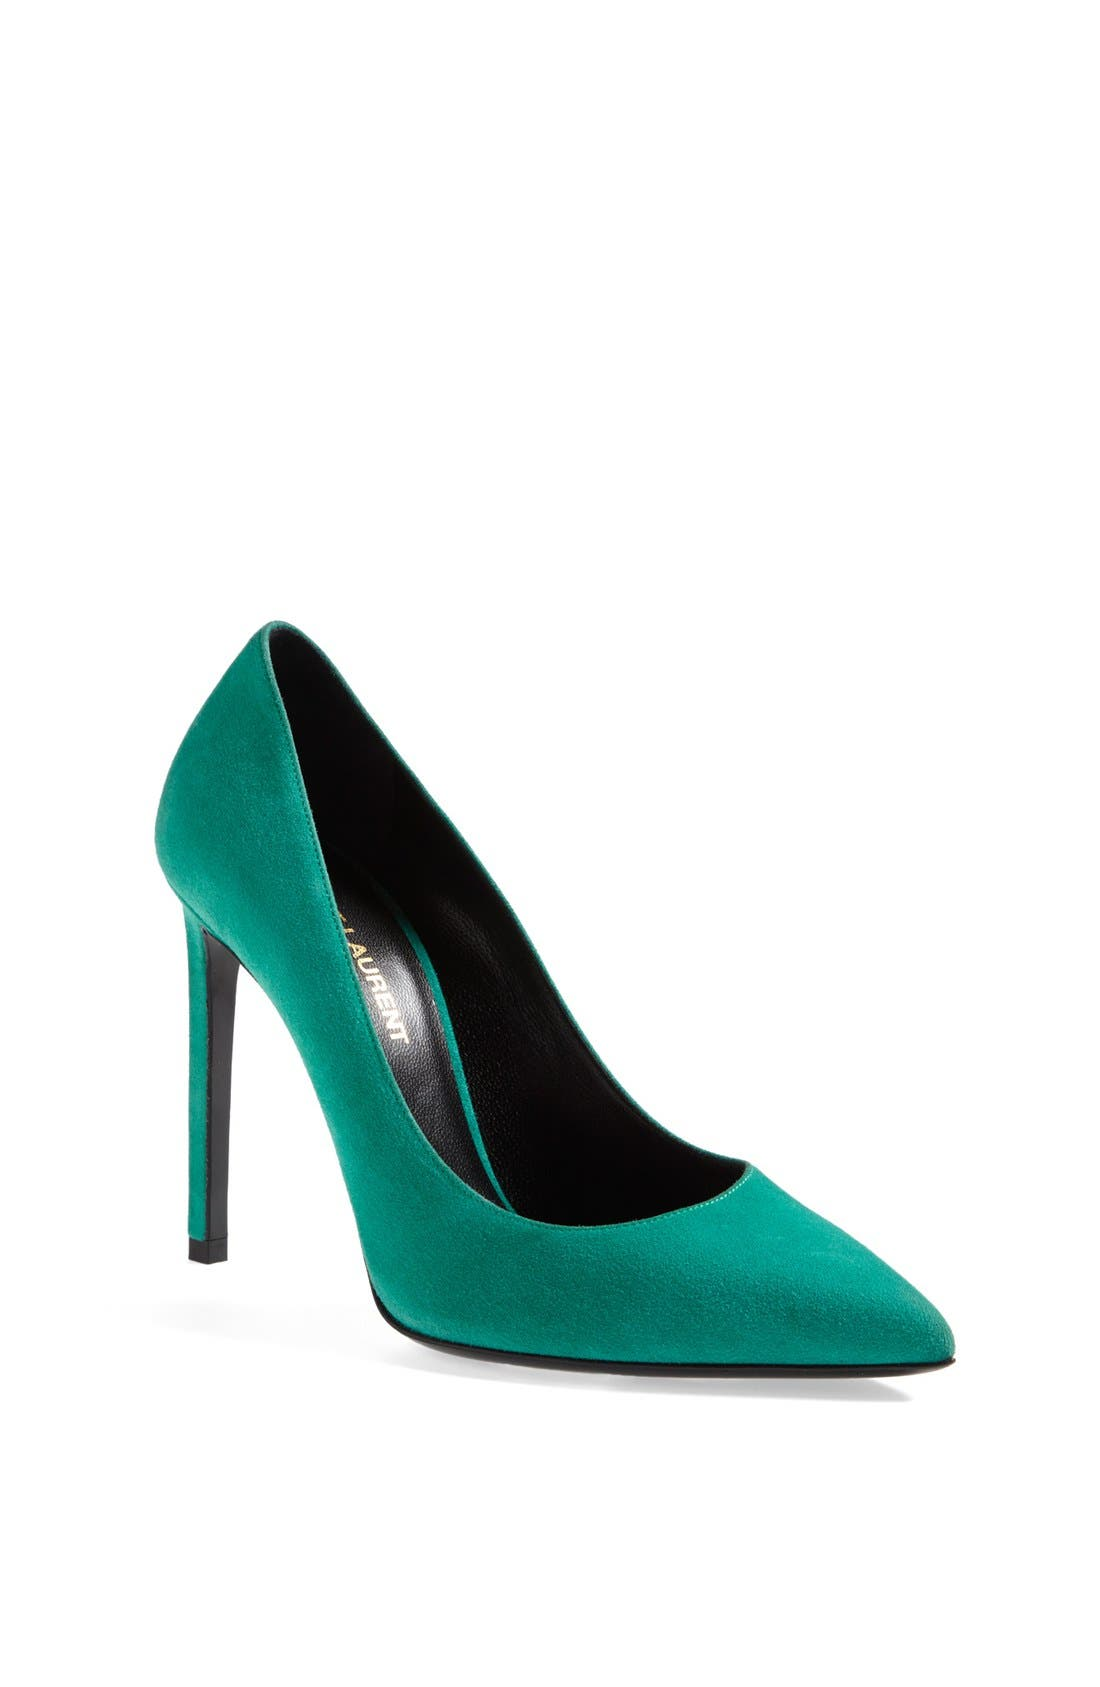 Alternate Image 1 Selected - Saint Laurent Pointy Toe Pump